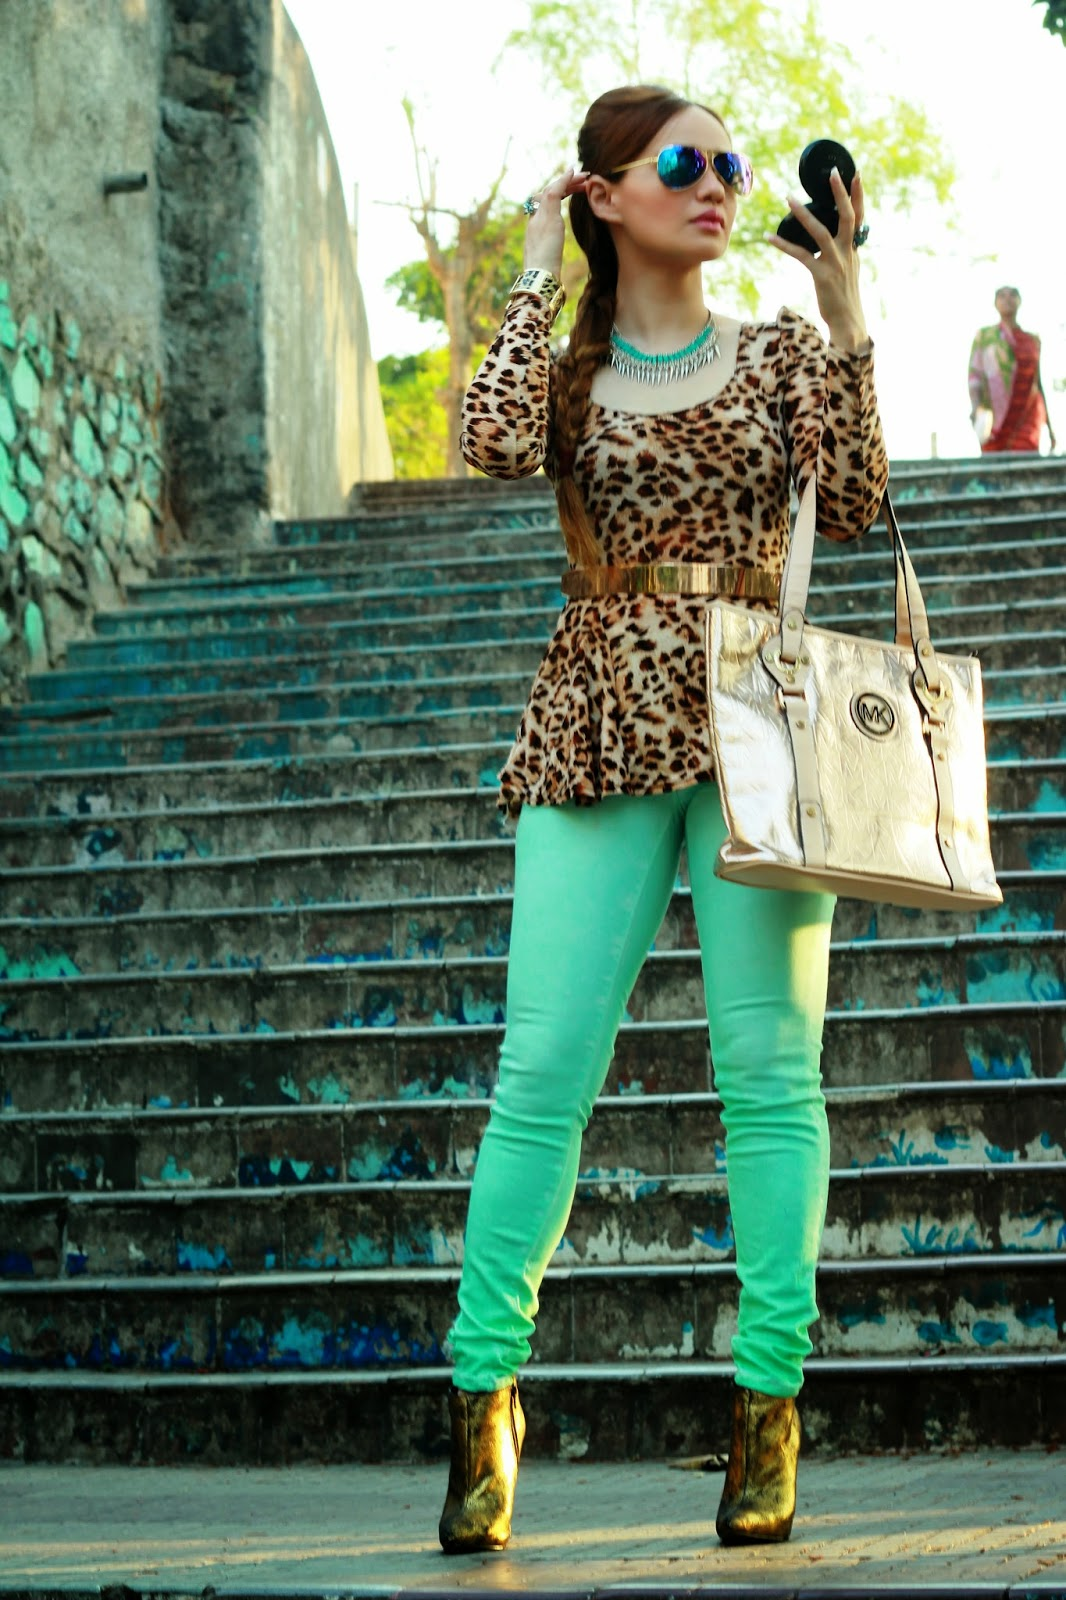 Leopard Peplum Top & Mint Green Jeans & Michael Kors Bag